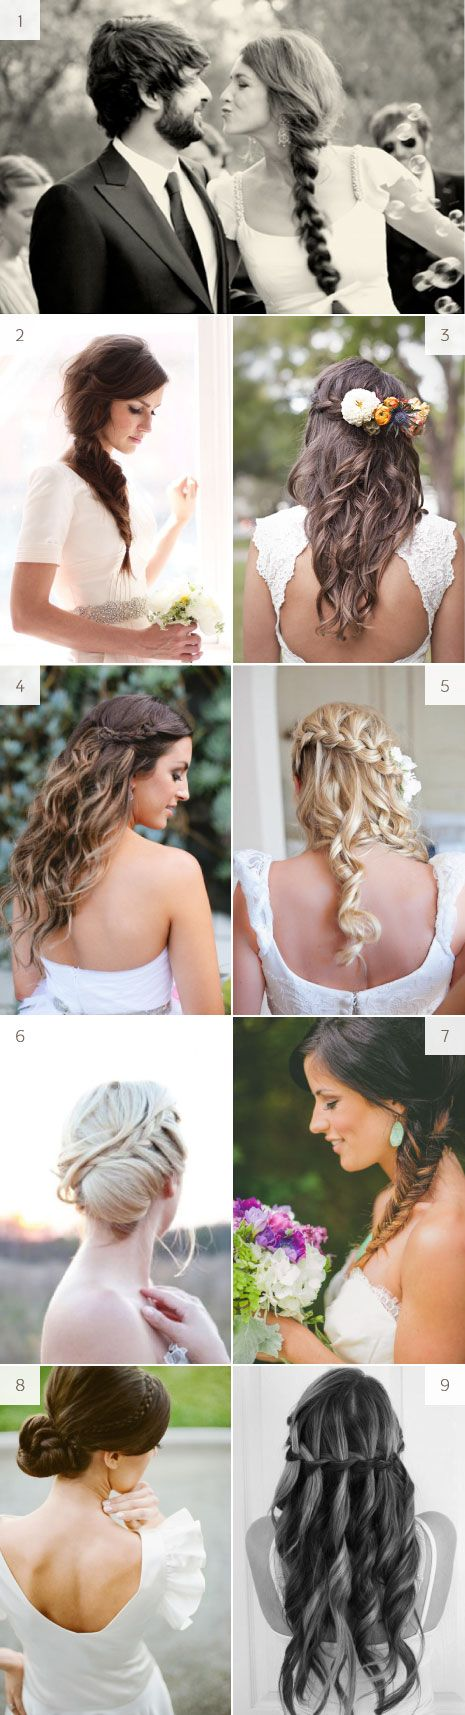 Wedding hair  ... Wedding ideas for brides, grooms, parents & planners ... https://itunes.apple.com/us/app/the-gold-wedding-planner/id498112599?ls=1=8 … plus how to organise an entire wedding ♥ The Gold Wedding Planner iPhone App ♥